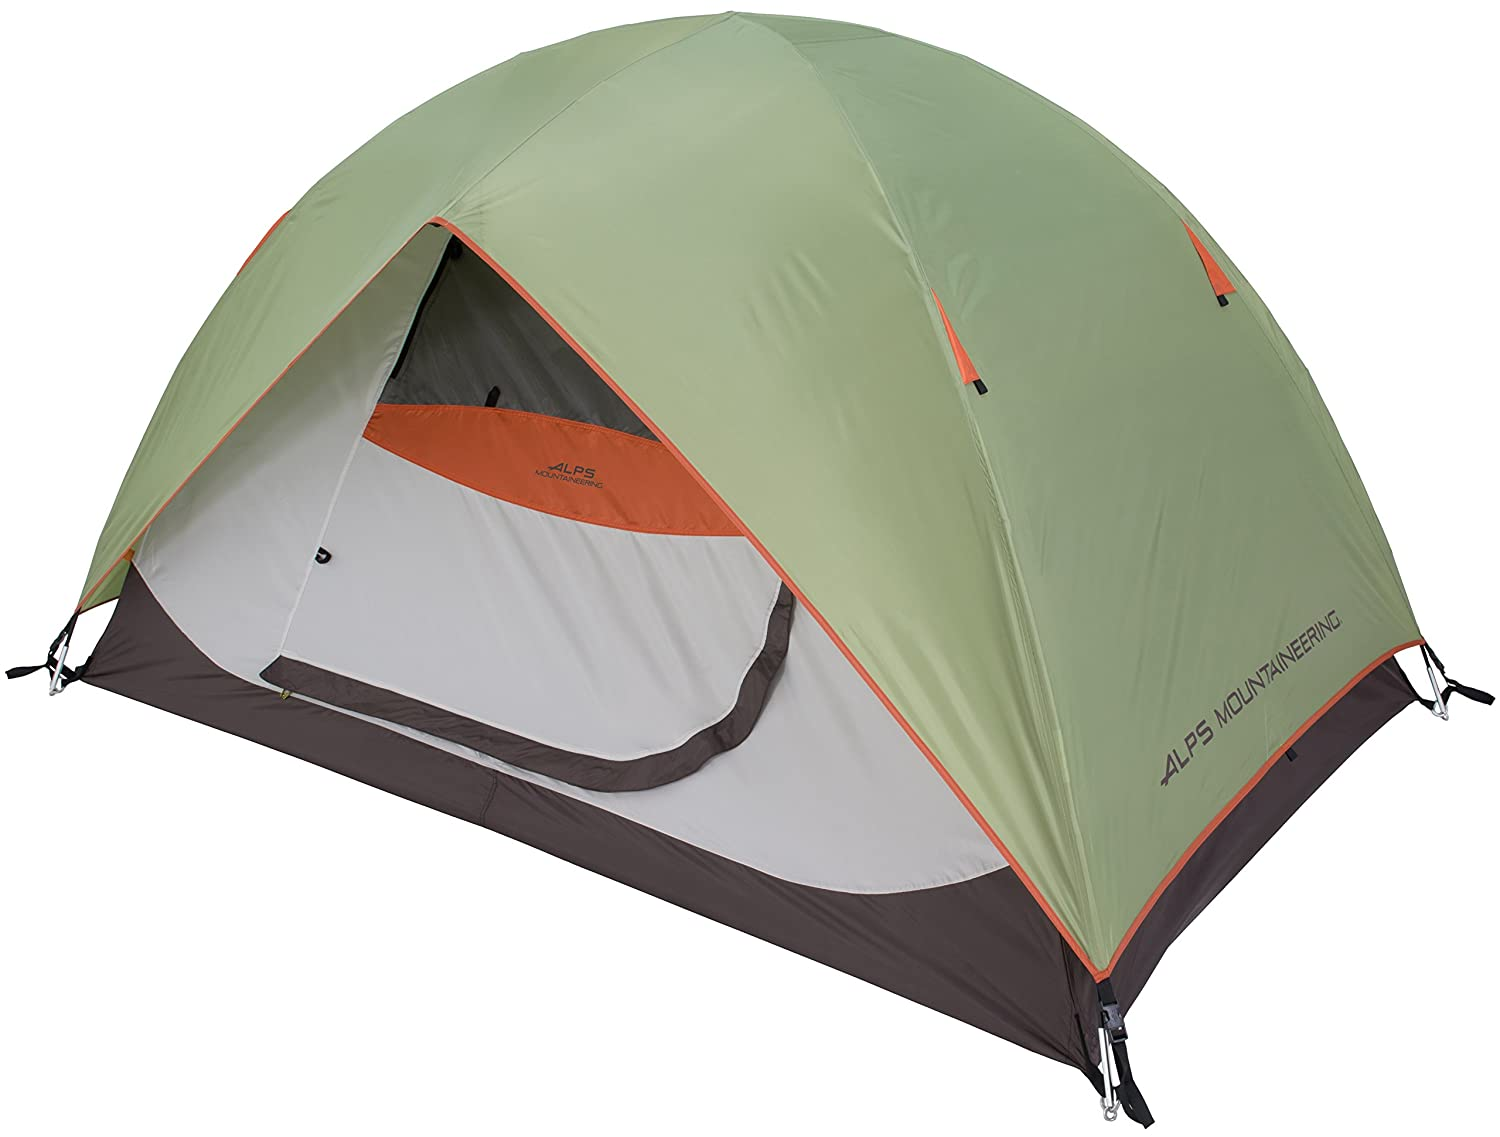 Amazon.com  ALPS Mountaineering Meramac 2-Person Tent  Backpacking Tents  Sports u0026 Outdoors  sc 1 st  Amazon.com : 2 person tent - memphite.com